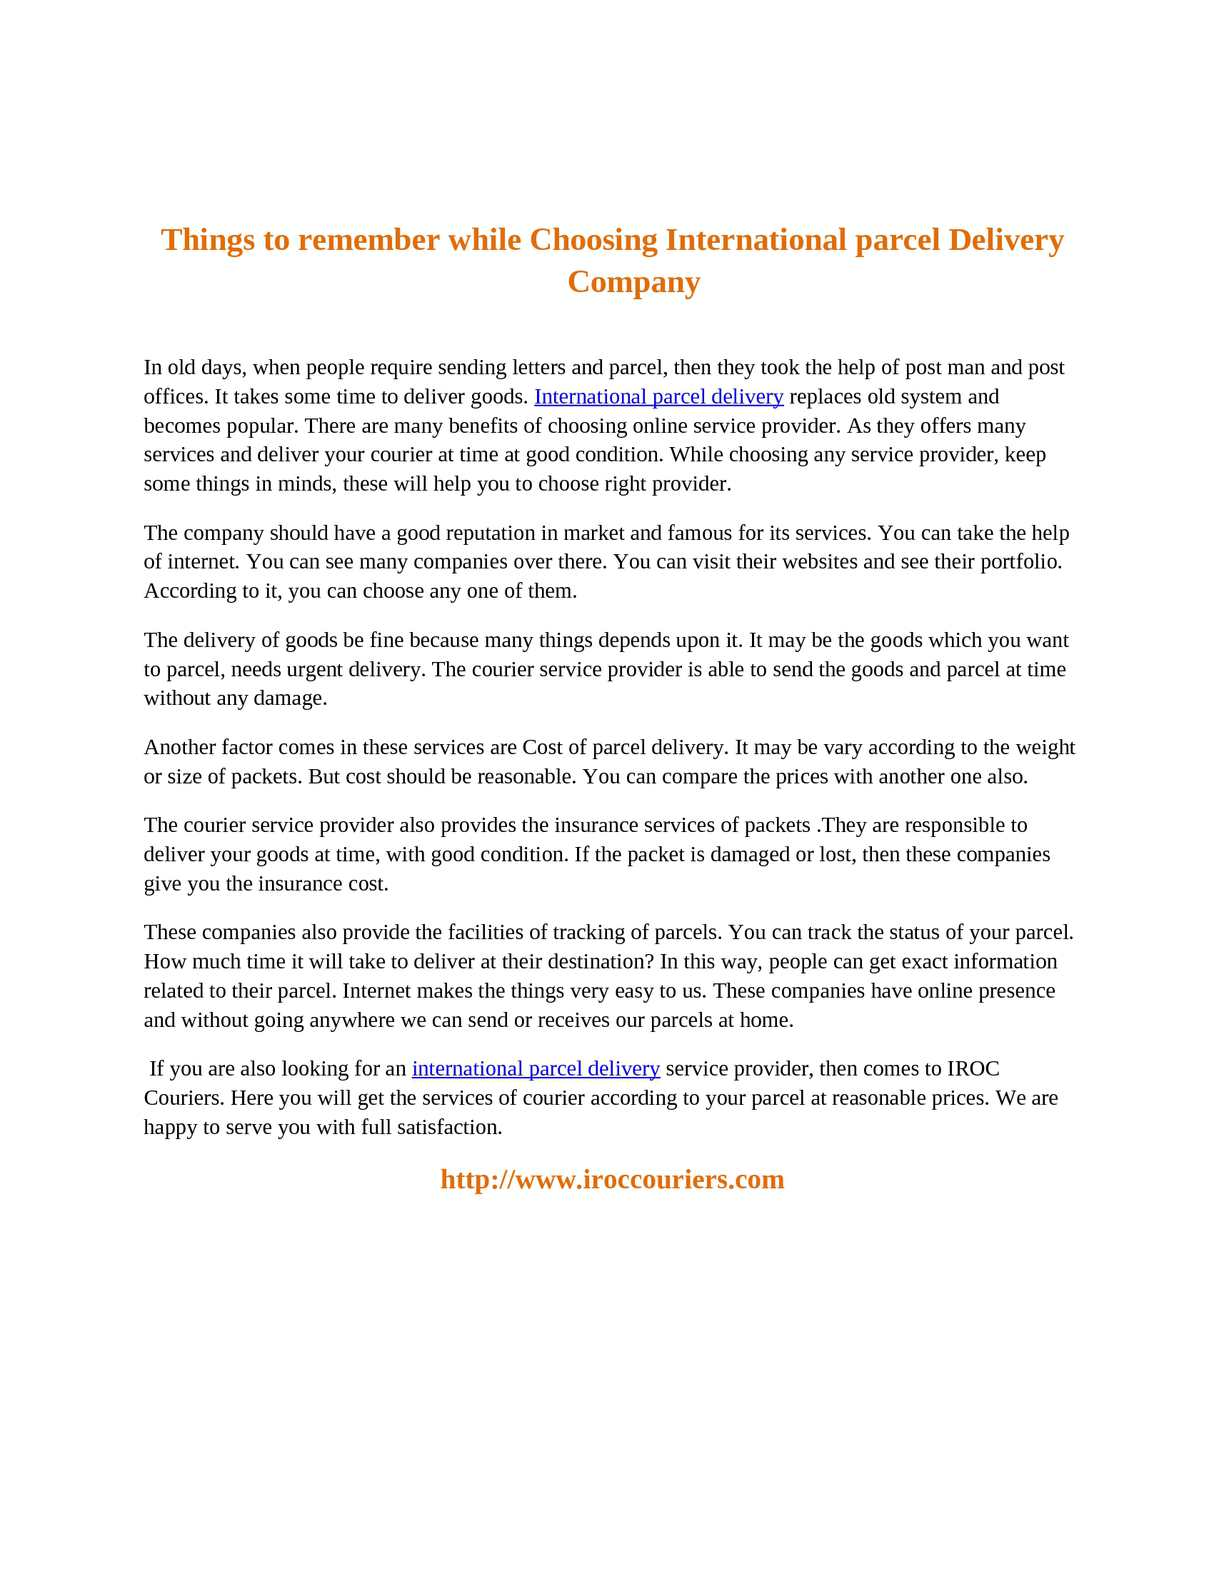 Calaméo - Things to remember while Choosing International parcel